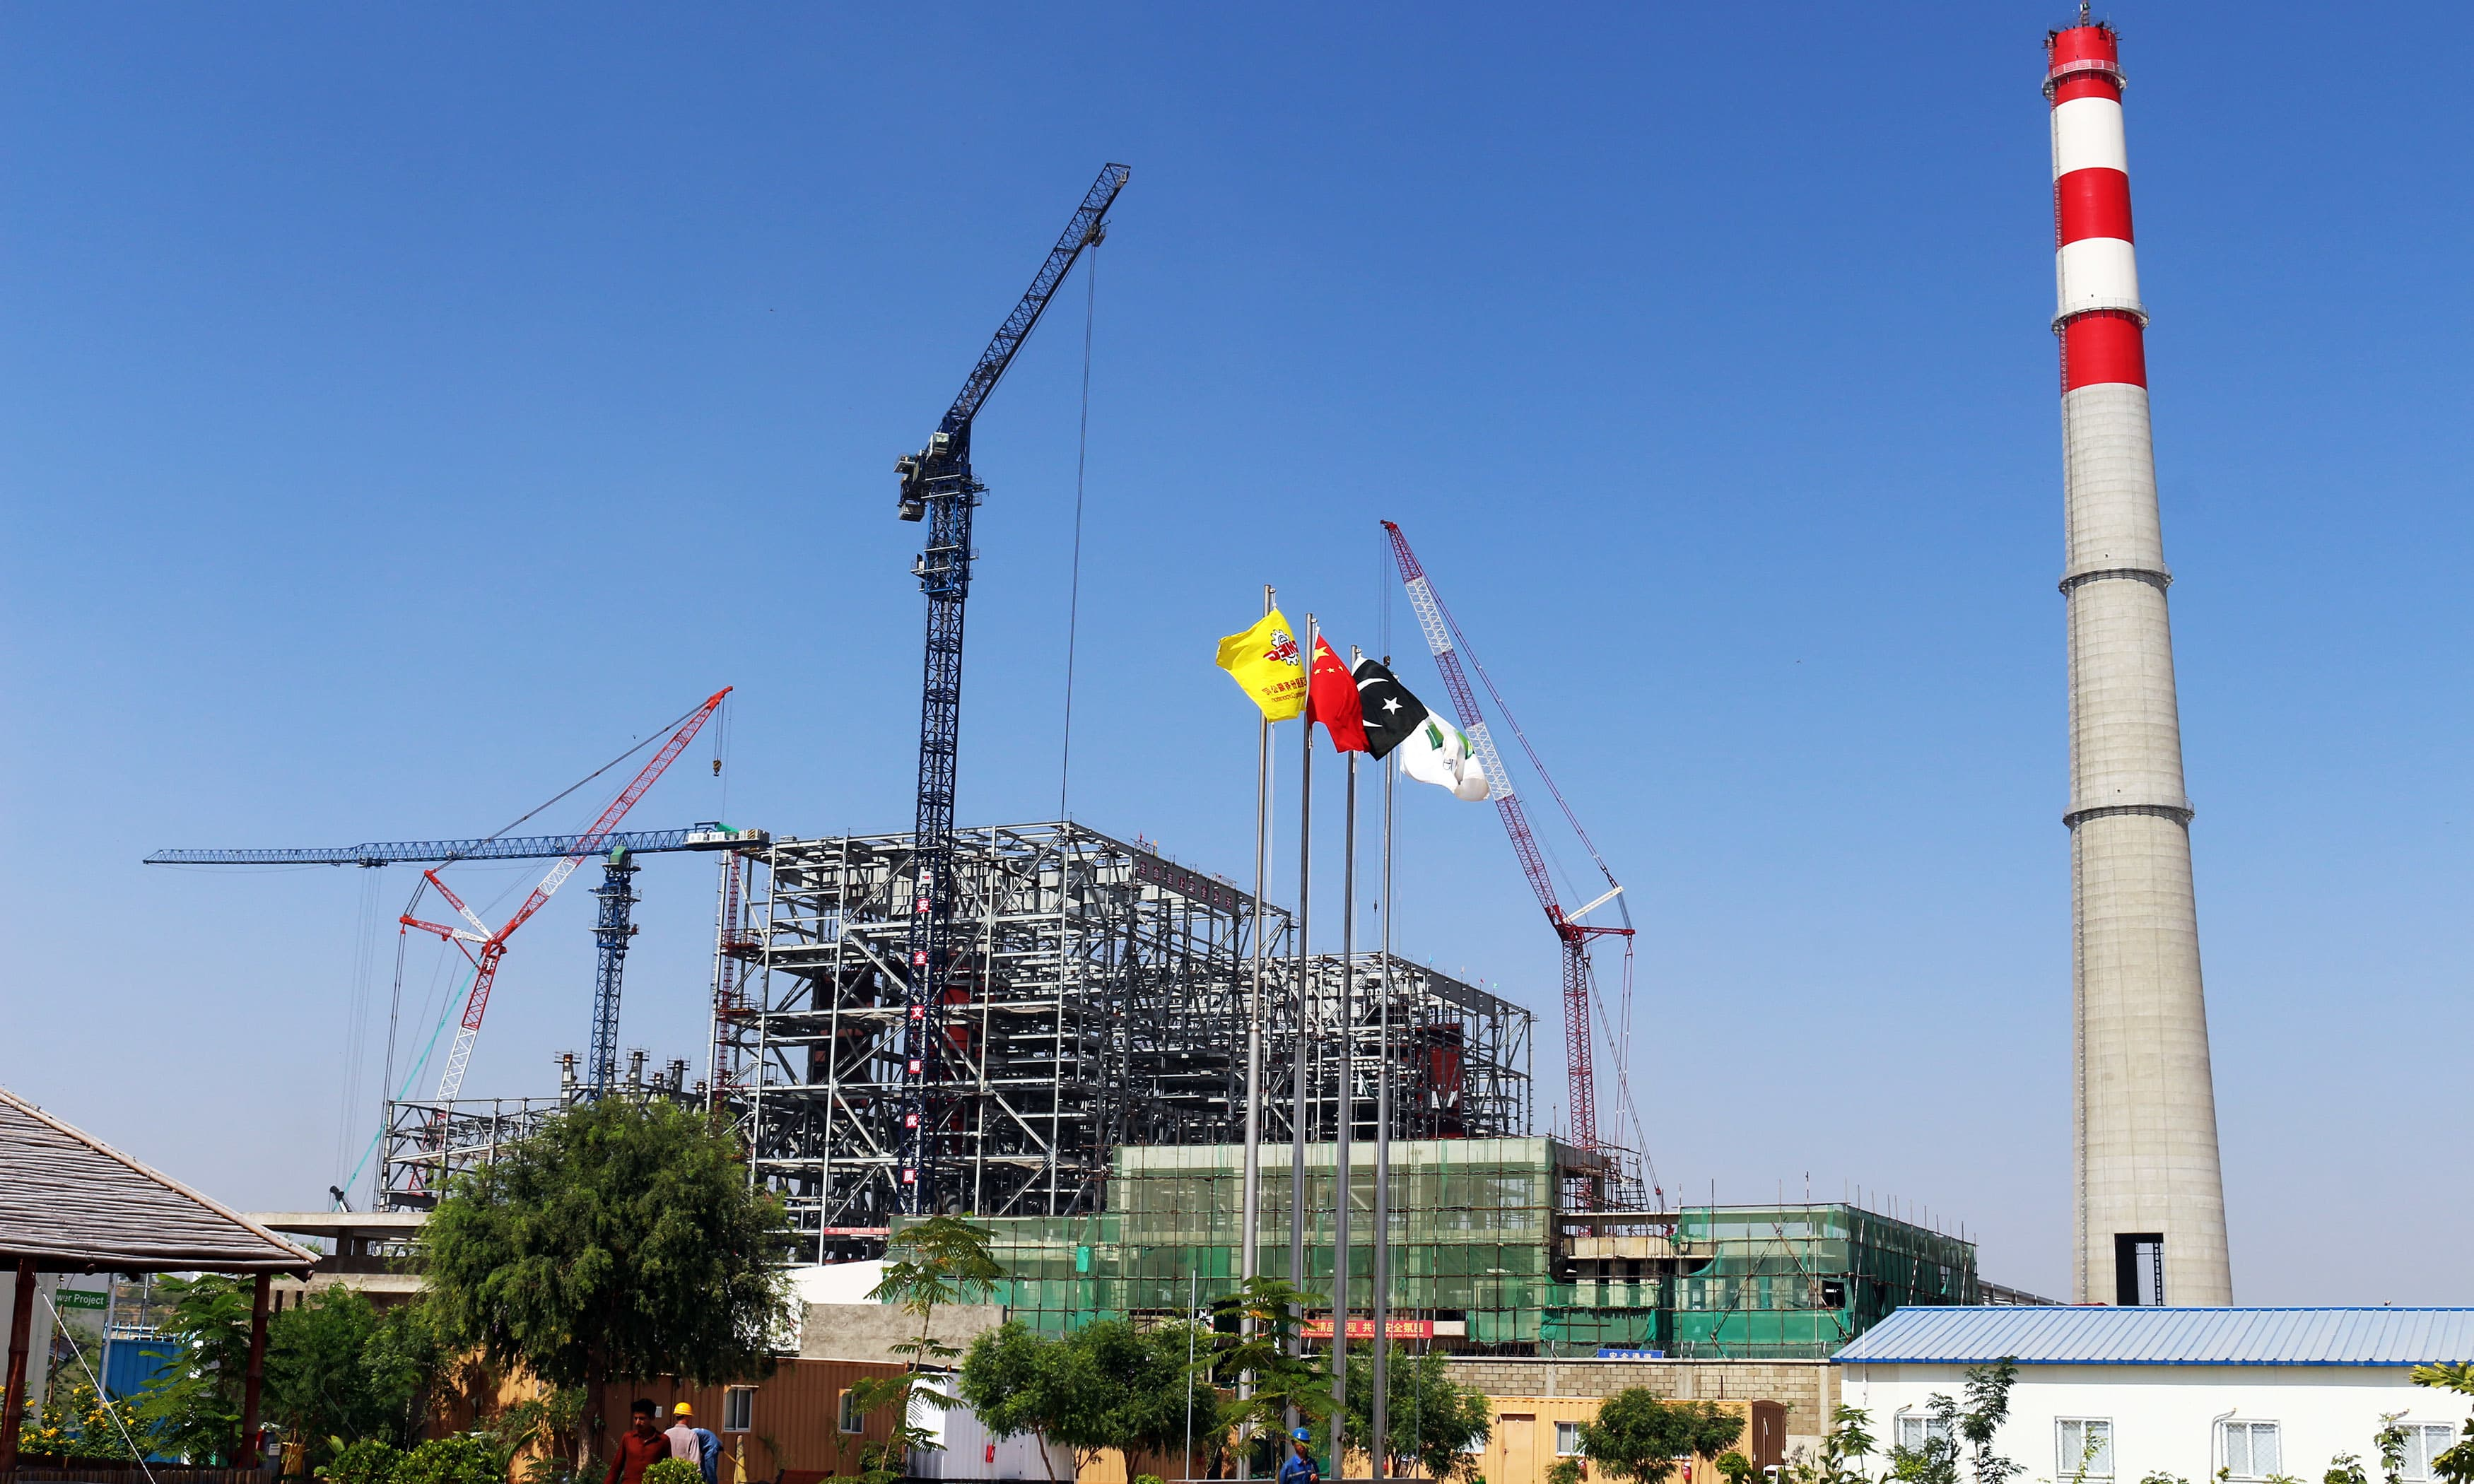 Work on power plant having a capacity of 1,320 megawatts underway in full swing.